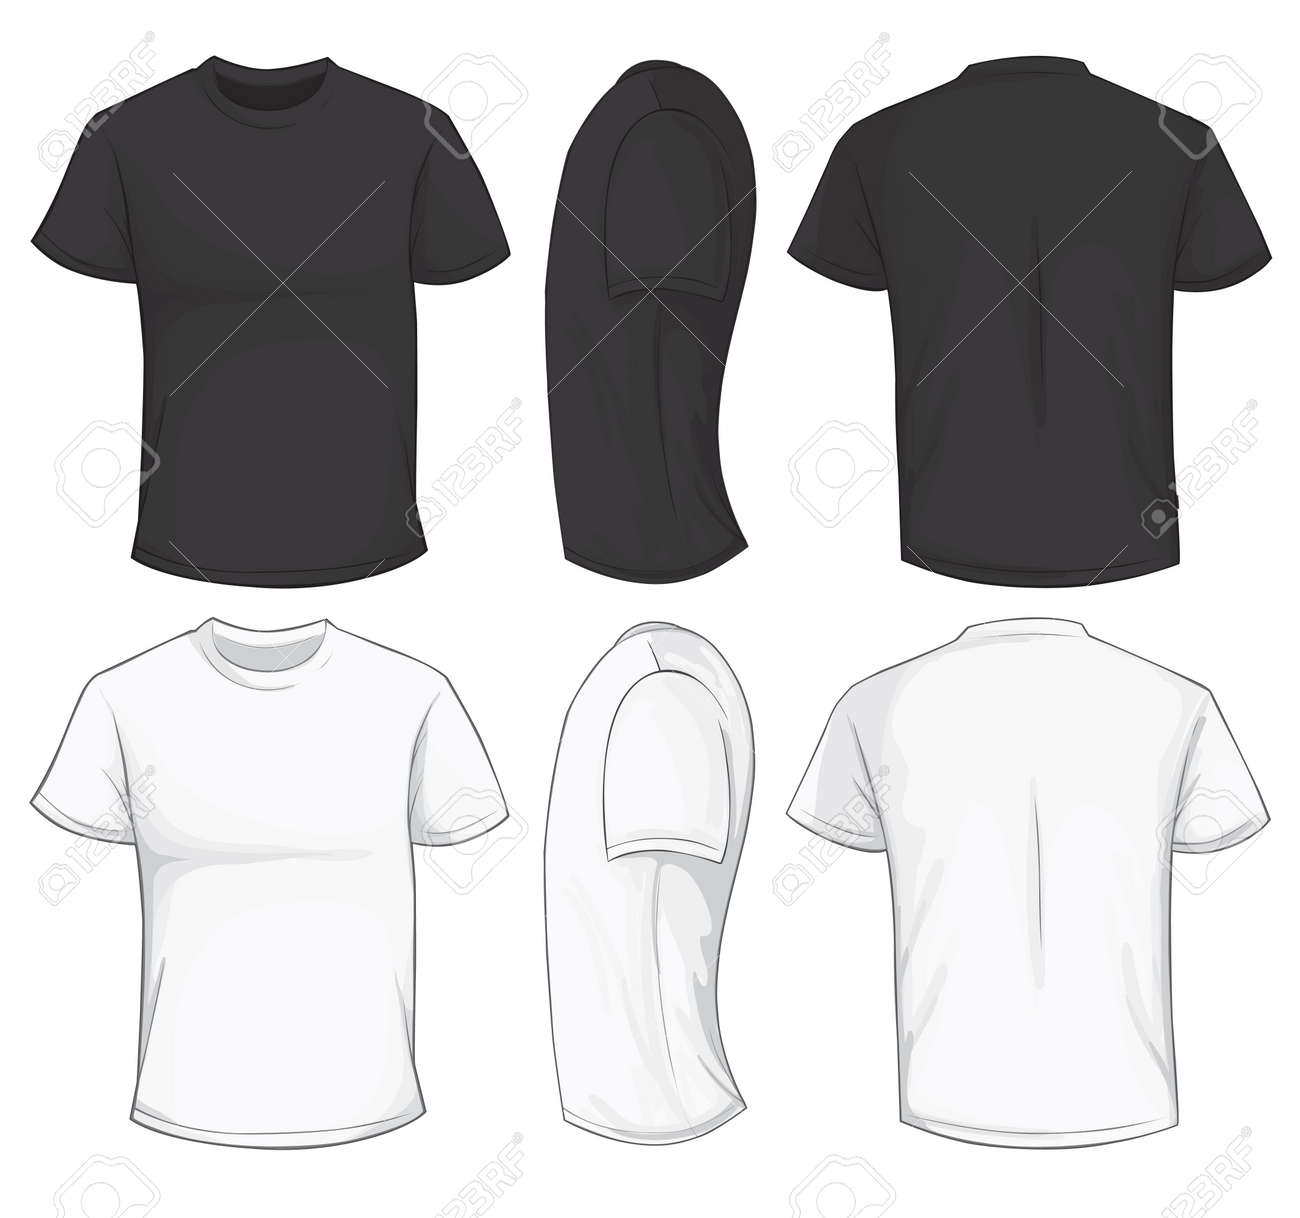 Vector Illustration Of Blank Black And White Men\'s T-shirt Template ...